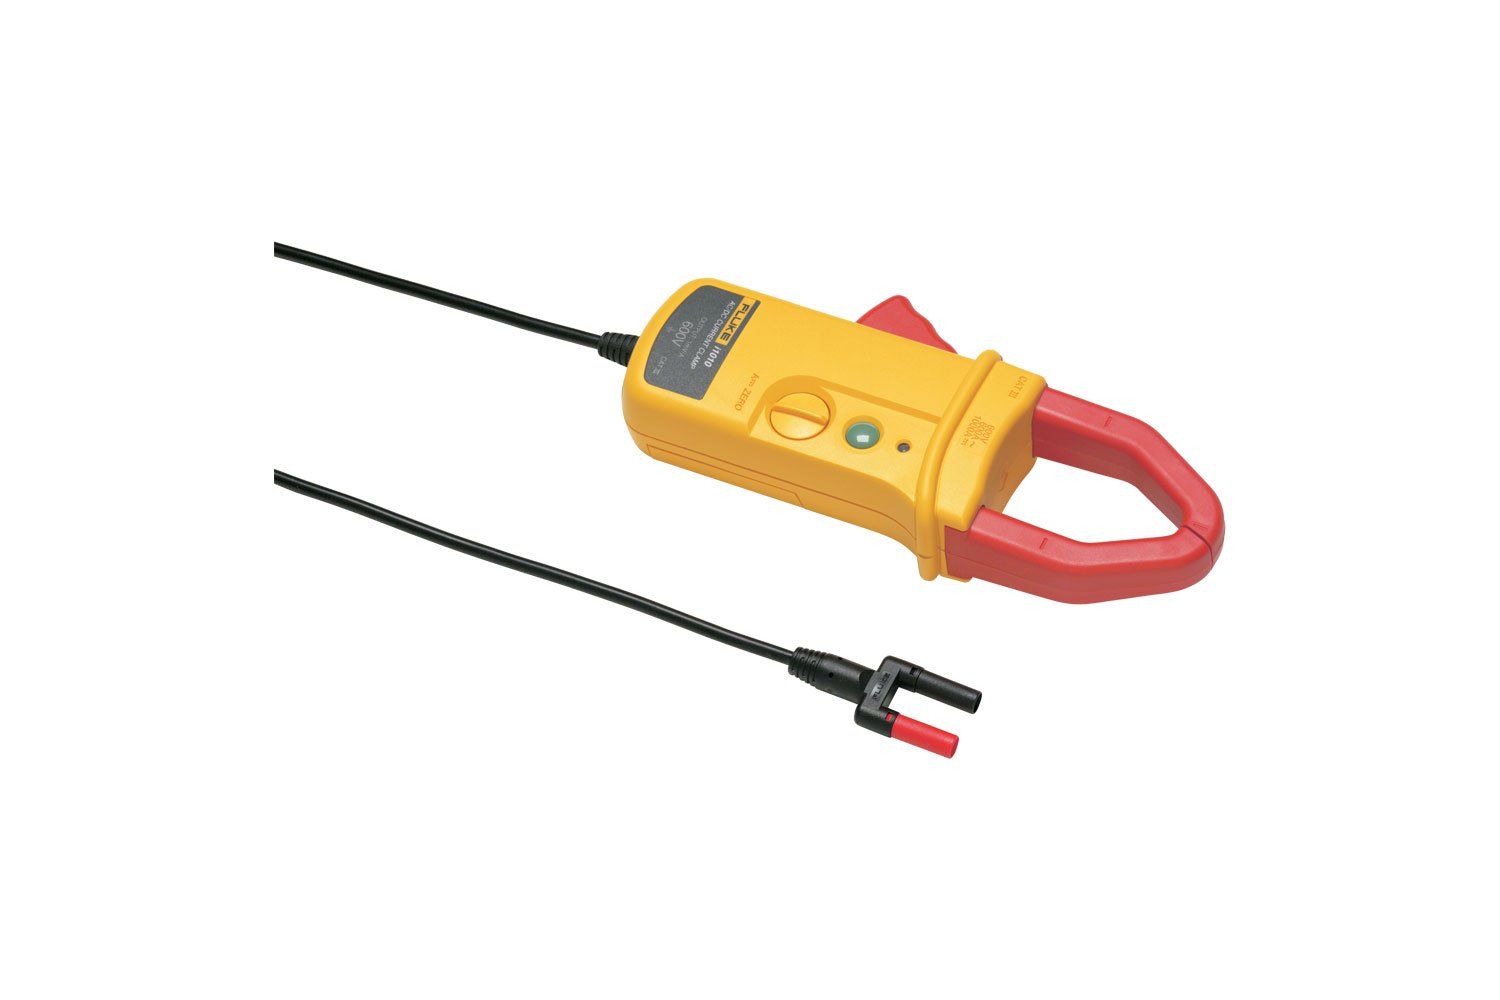 Fluke i1010 AC/DC Current Clamp